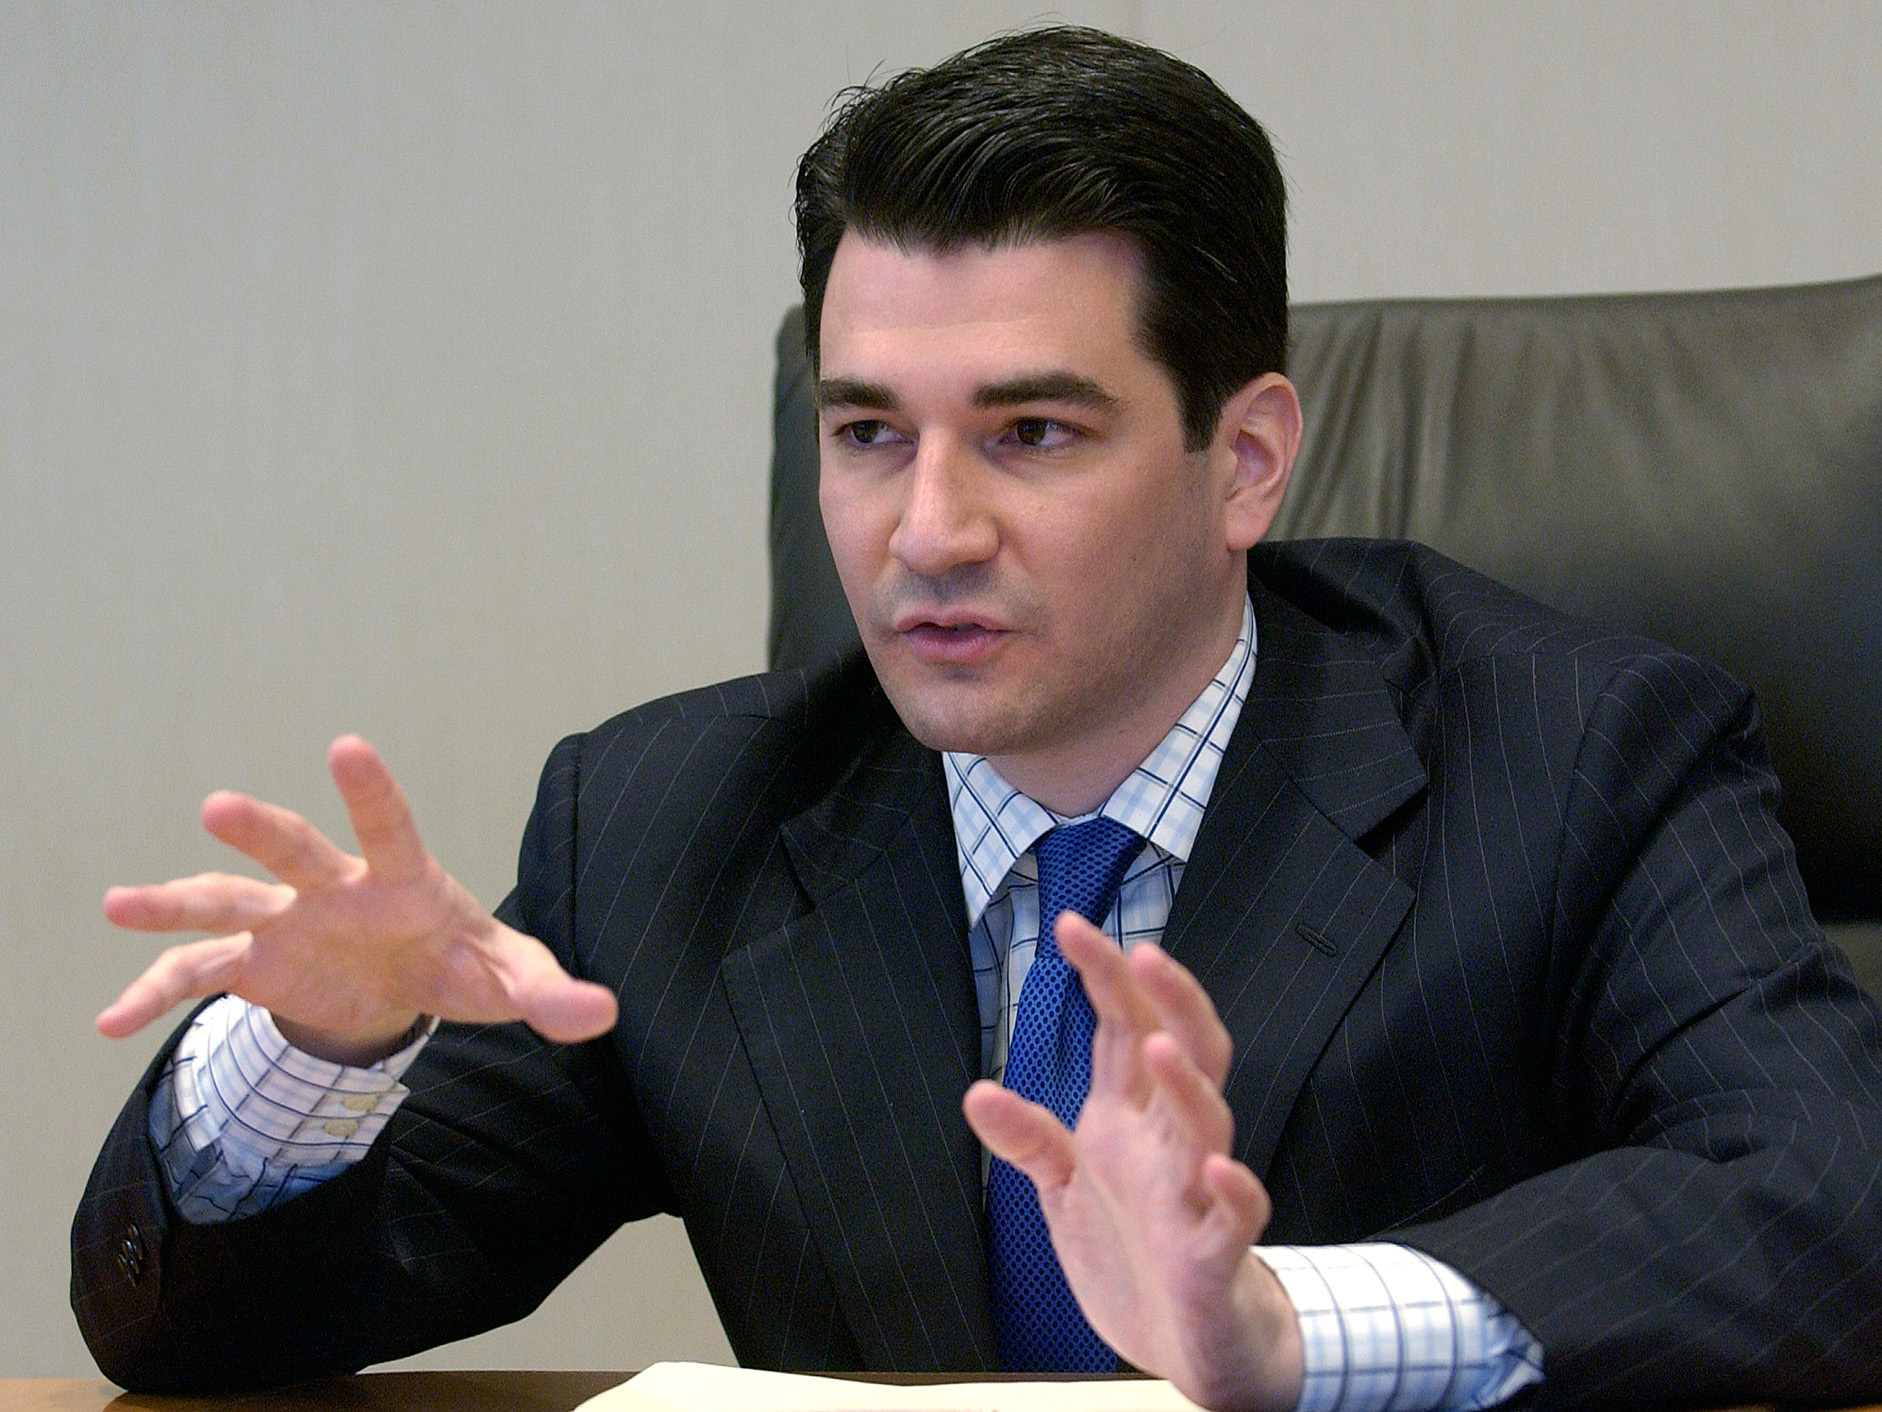 Pharma industry thumbs up on FDA pick Gottlieb